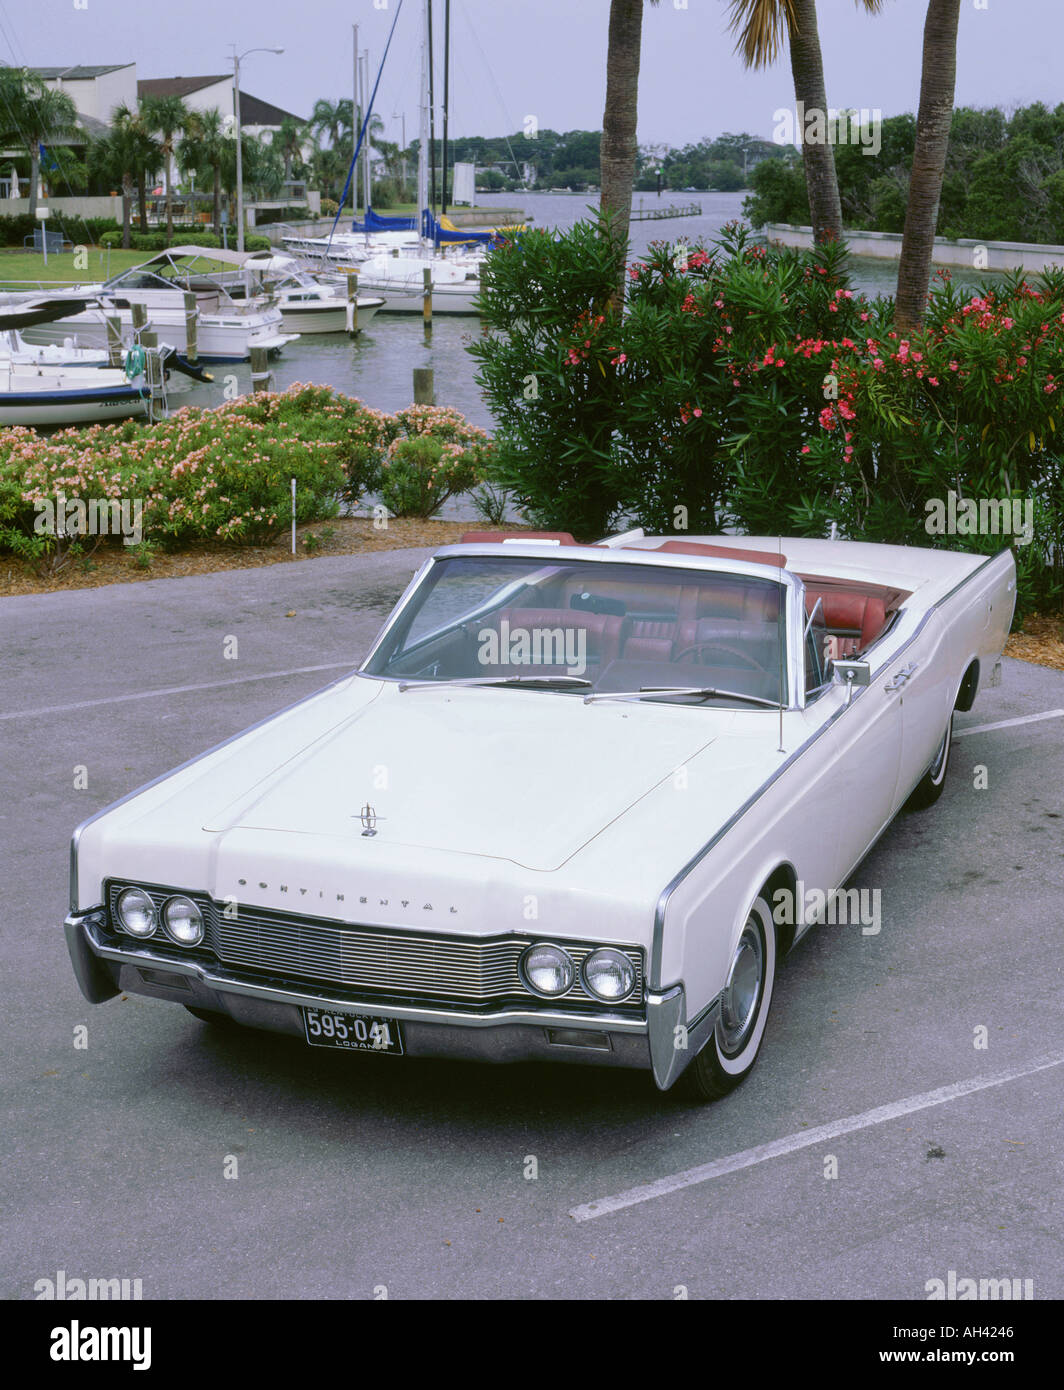 4 Door Convertible >> 1967 Lincoln Continental 4 Door Convertible Stock Photo